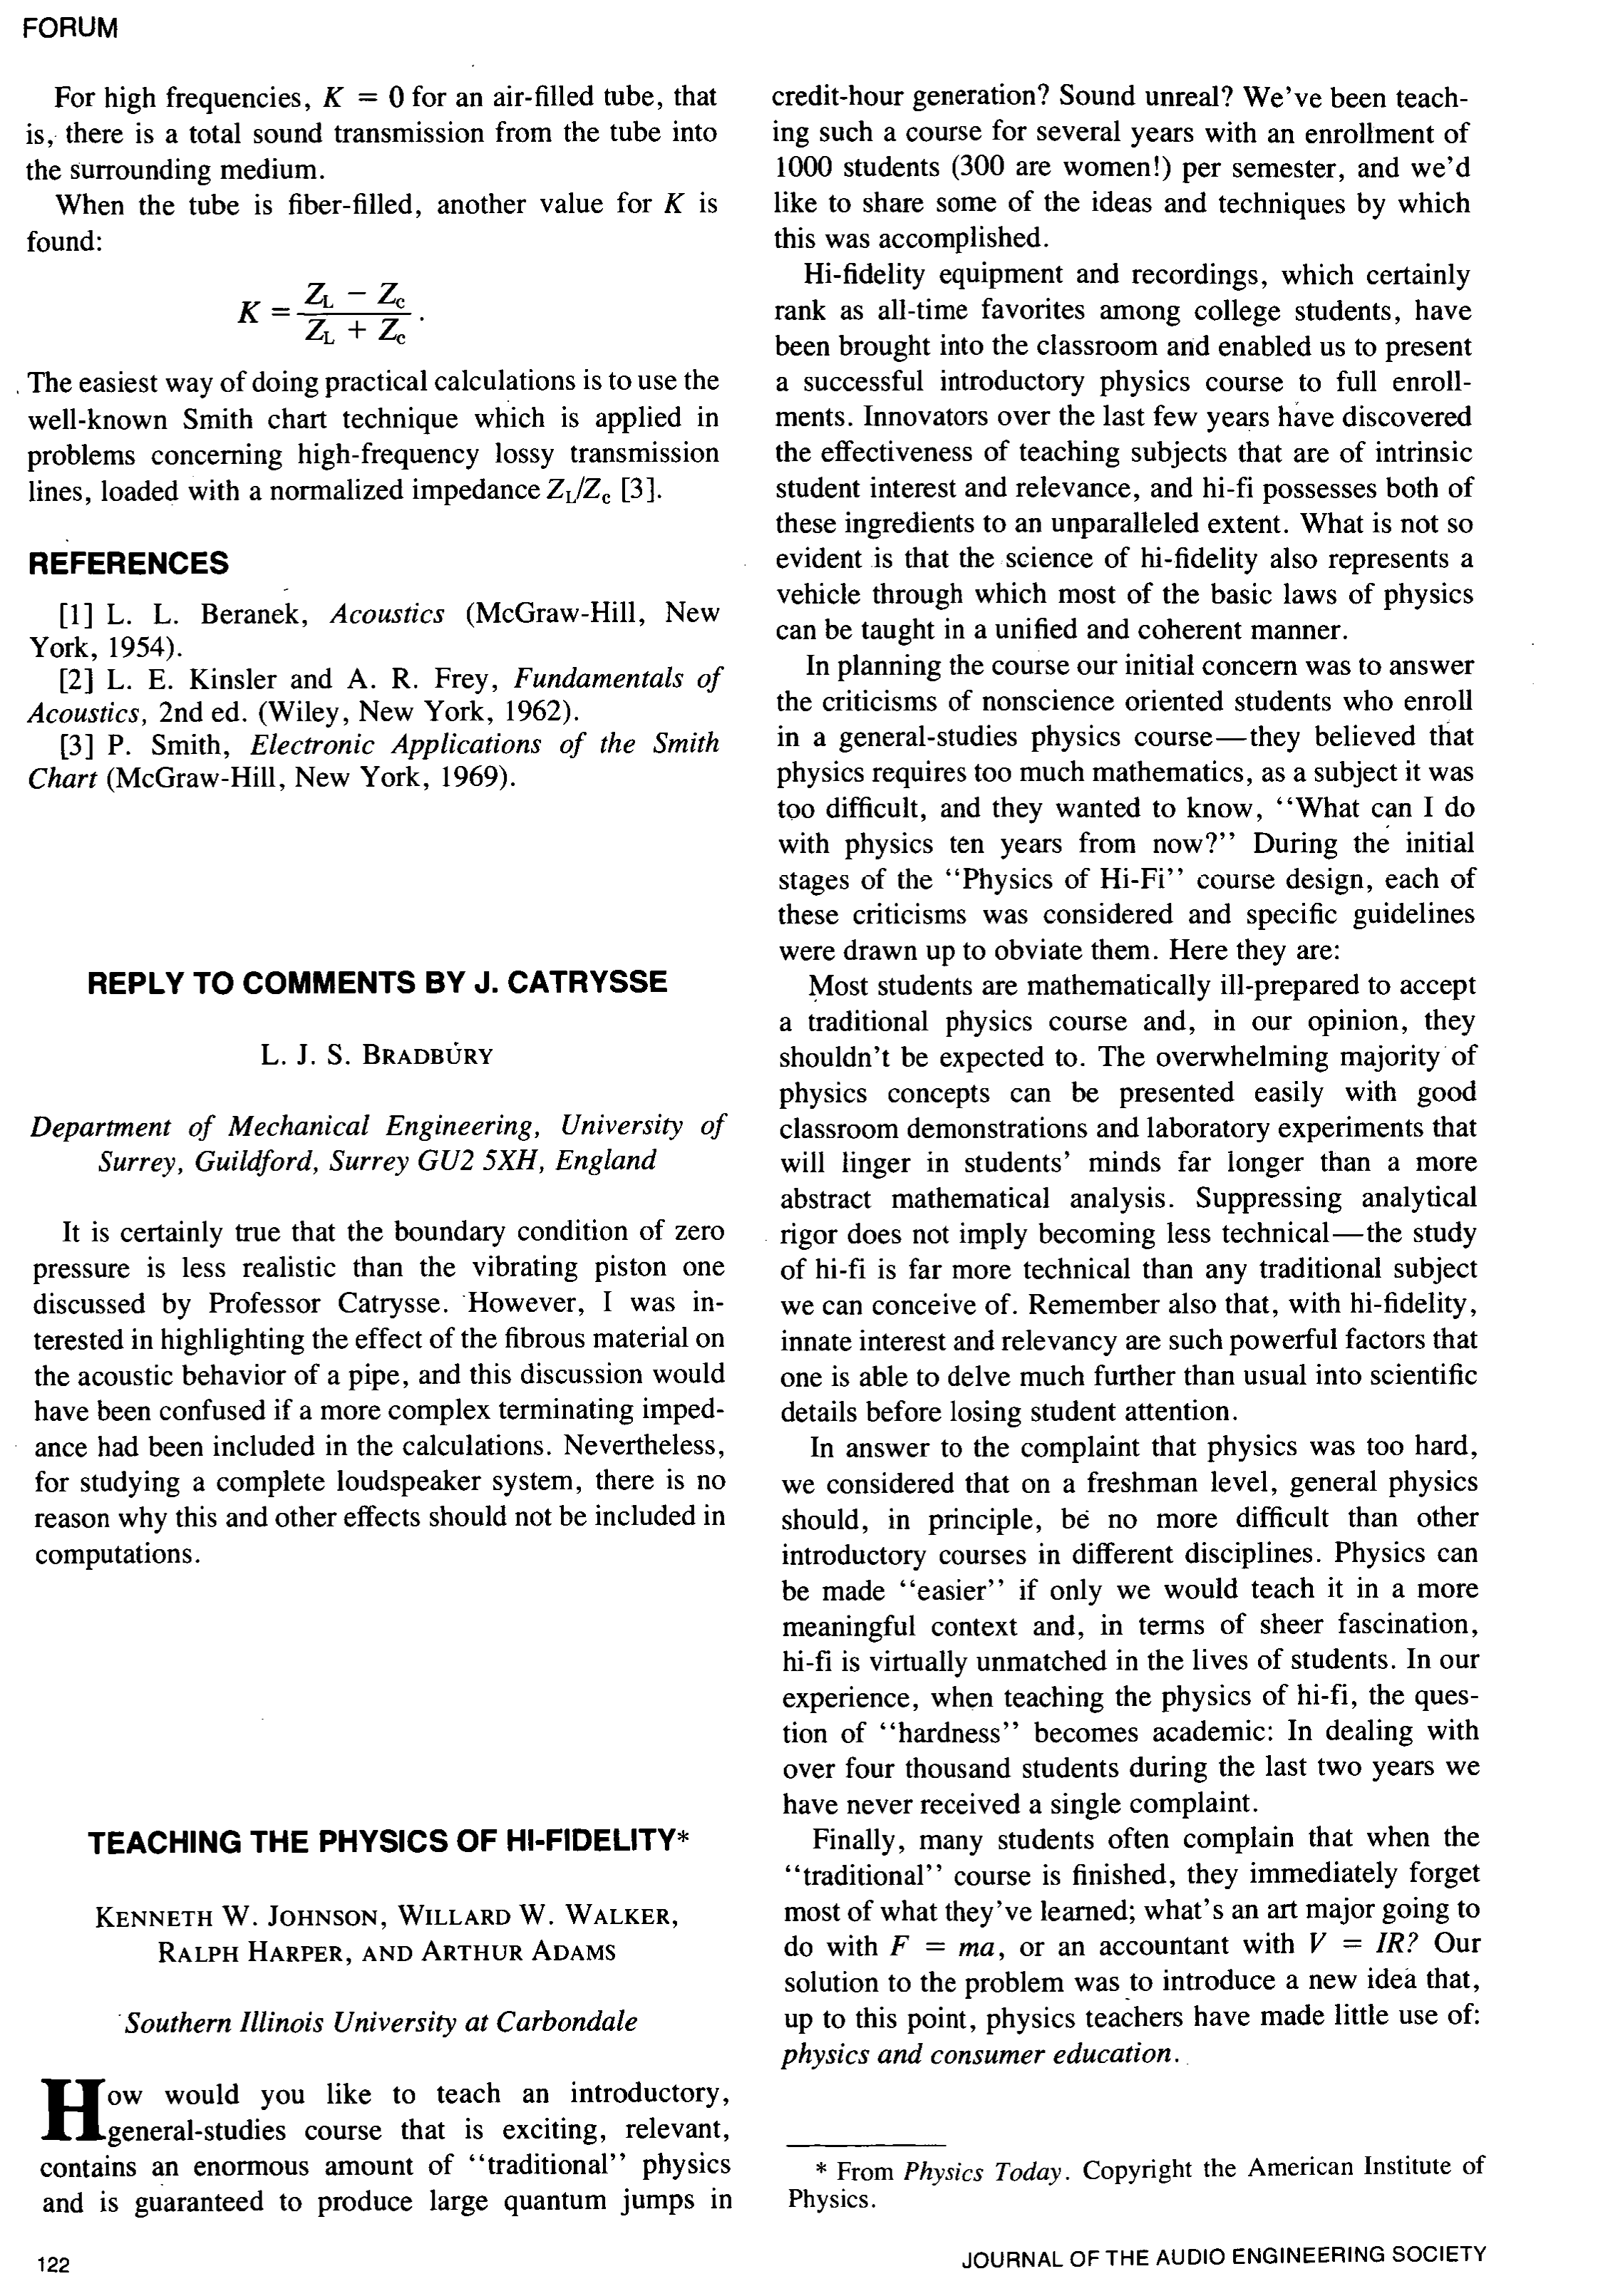 AES E-Library » Teaching the Physics of Hi-Fidelity